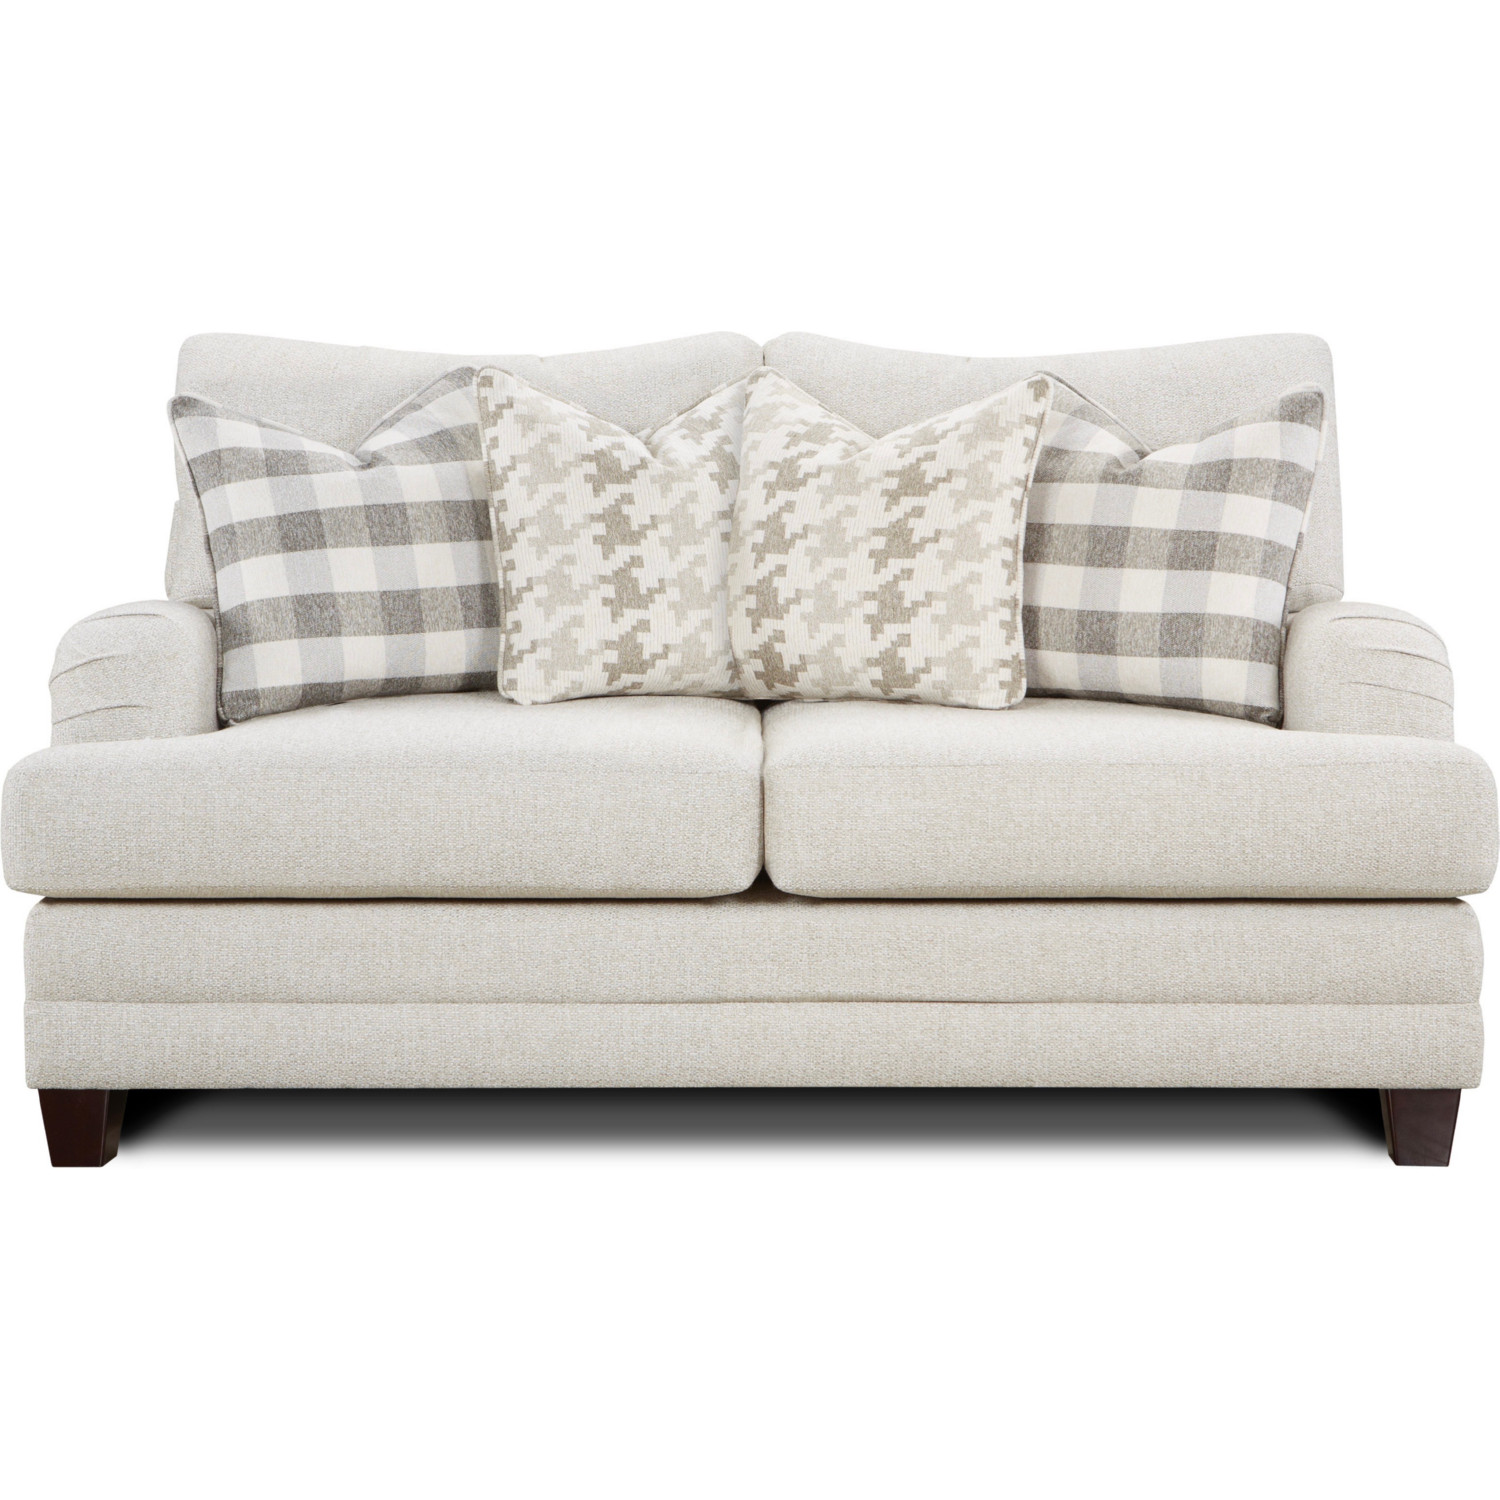 Picture of: Southern Furniture 4481 Basic Wool Loveseat Basic Traditional Wool Loveseat In Off White Performance Wool Like Fabric W Pillows